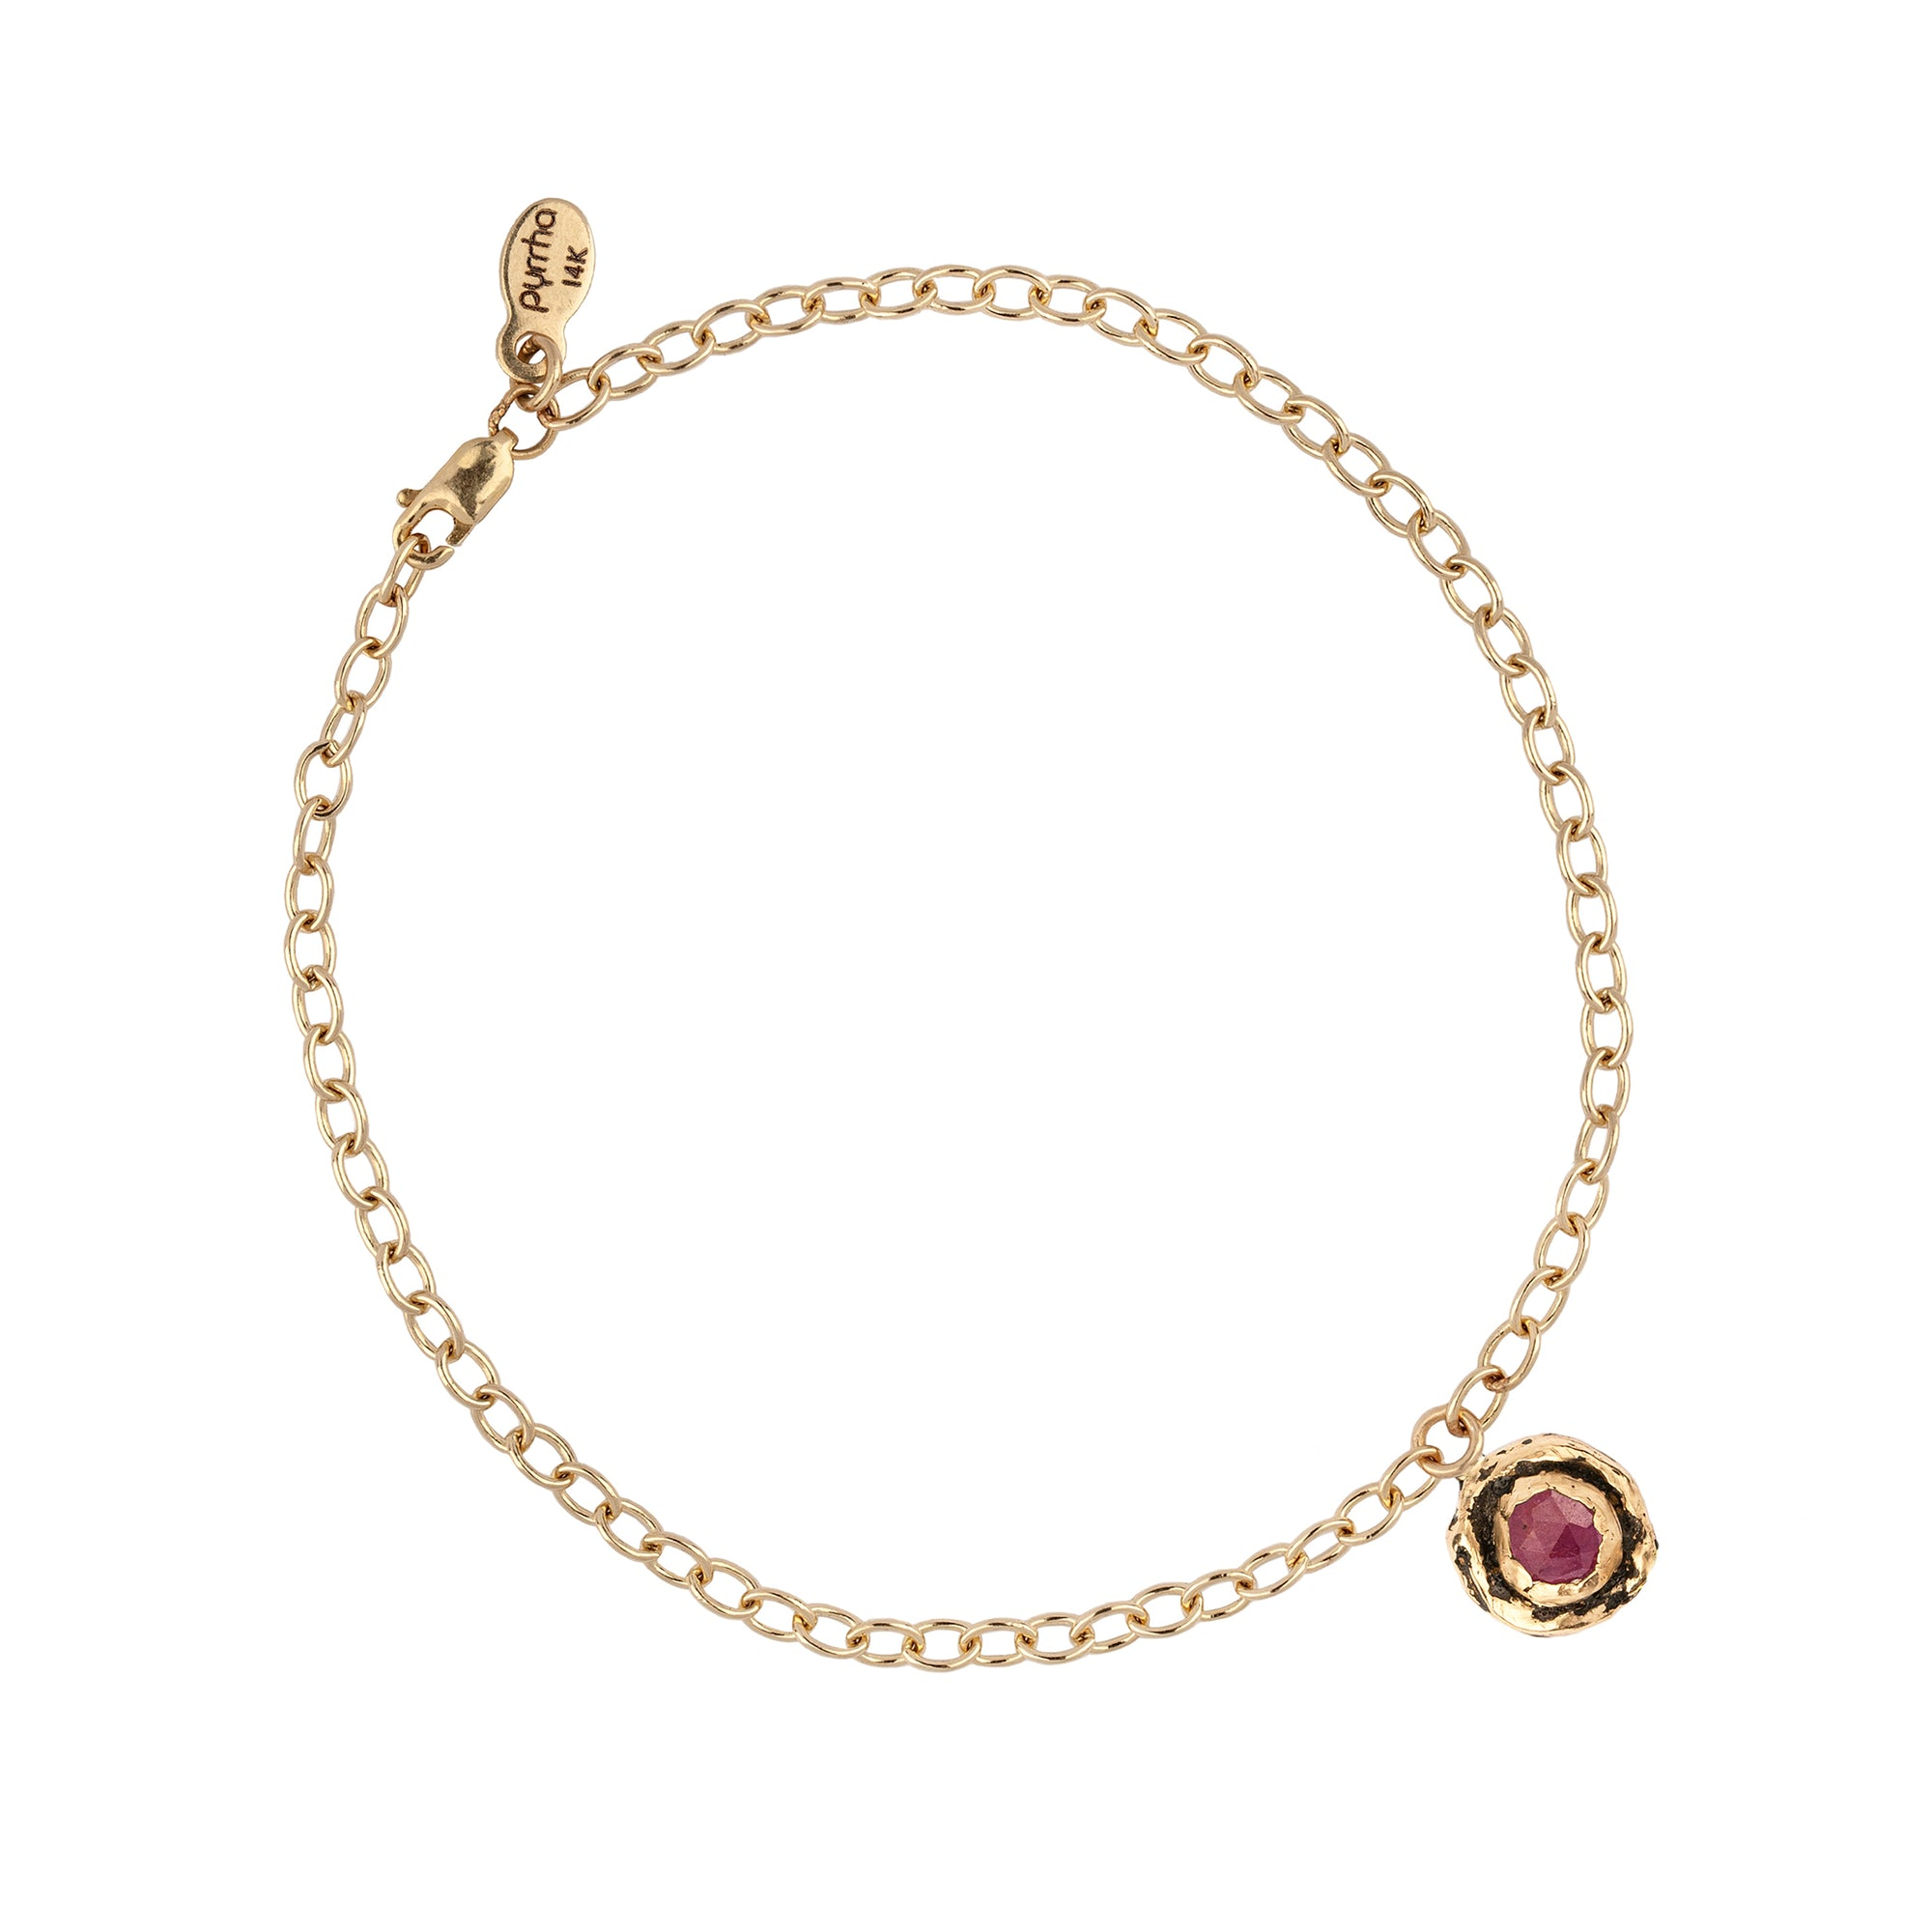 Ruby 14K Gold Faceted Stone Chain Bracelet